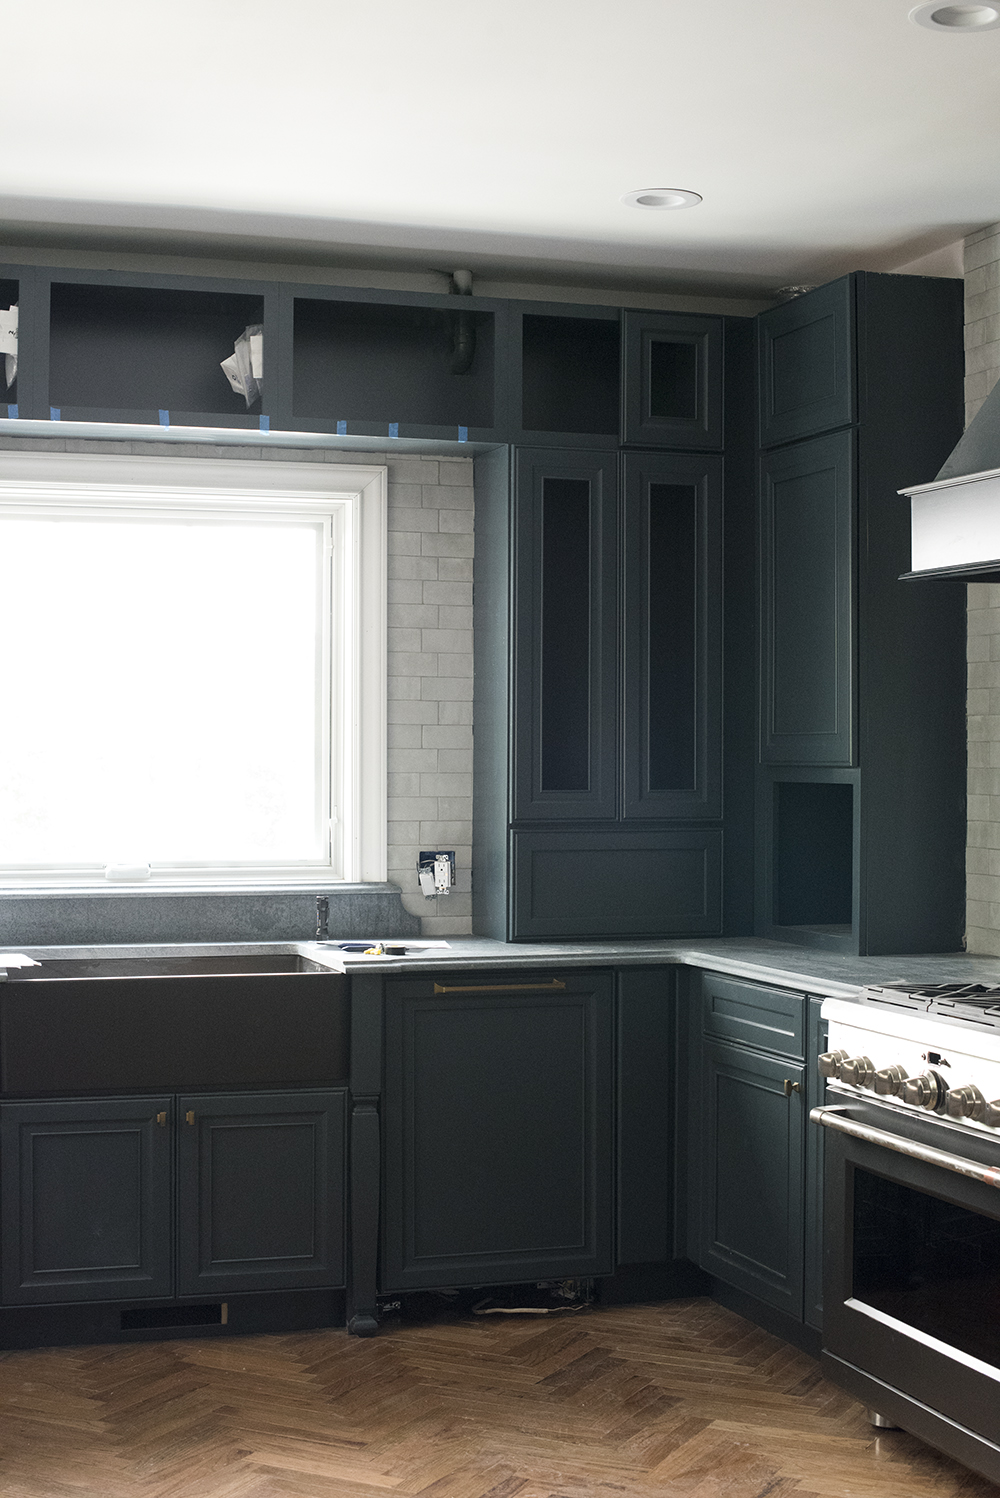 One Last Kitchen Update - roomfortuesday.com